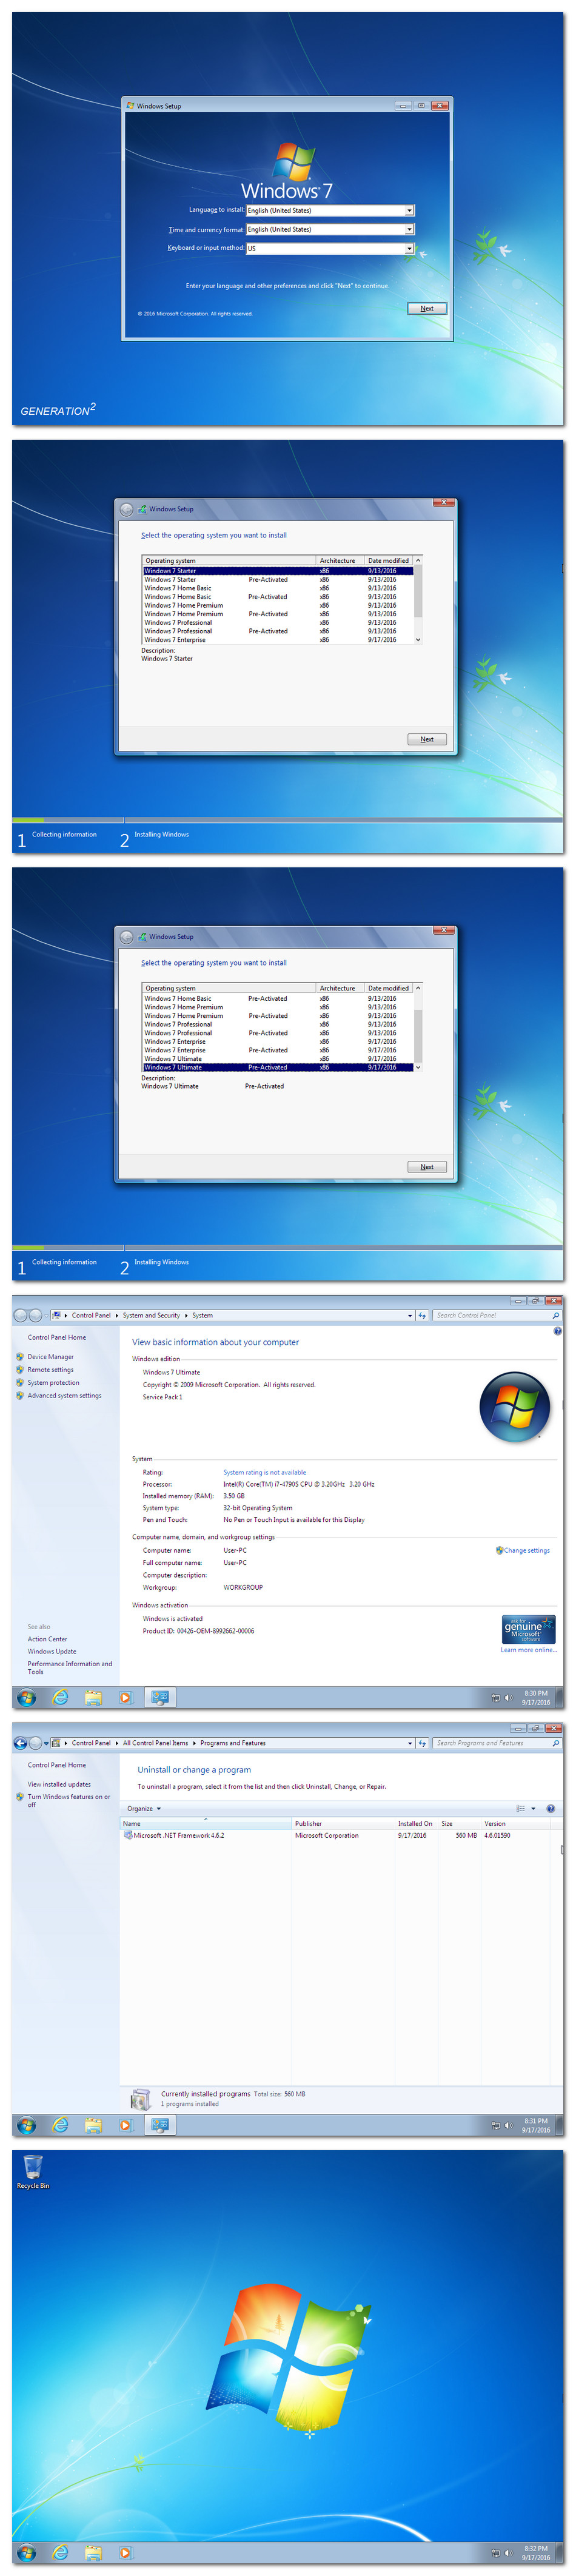 windows-7-sp1-iso-2016-32-bit